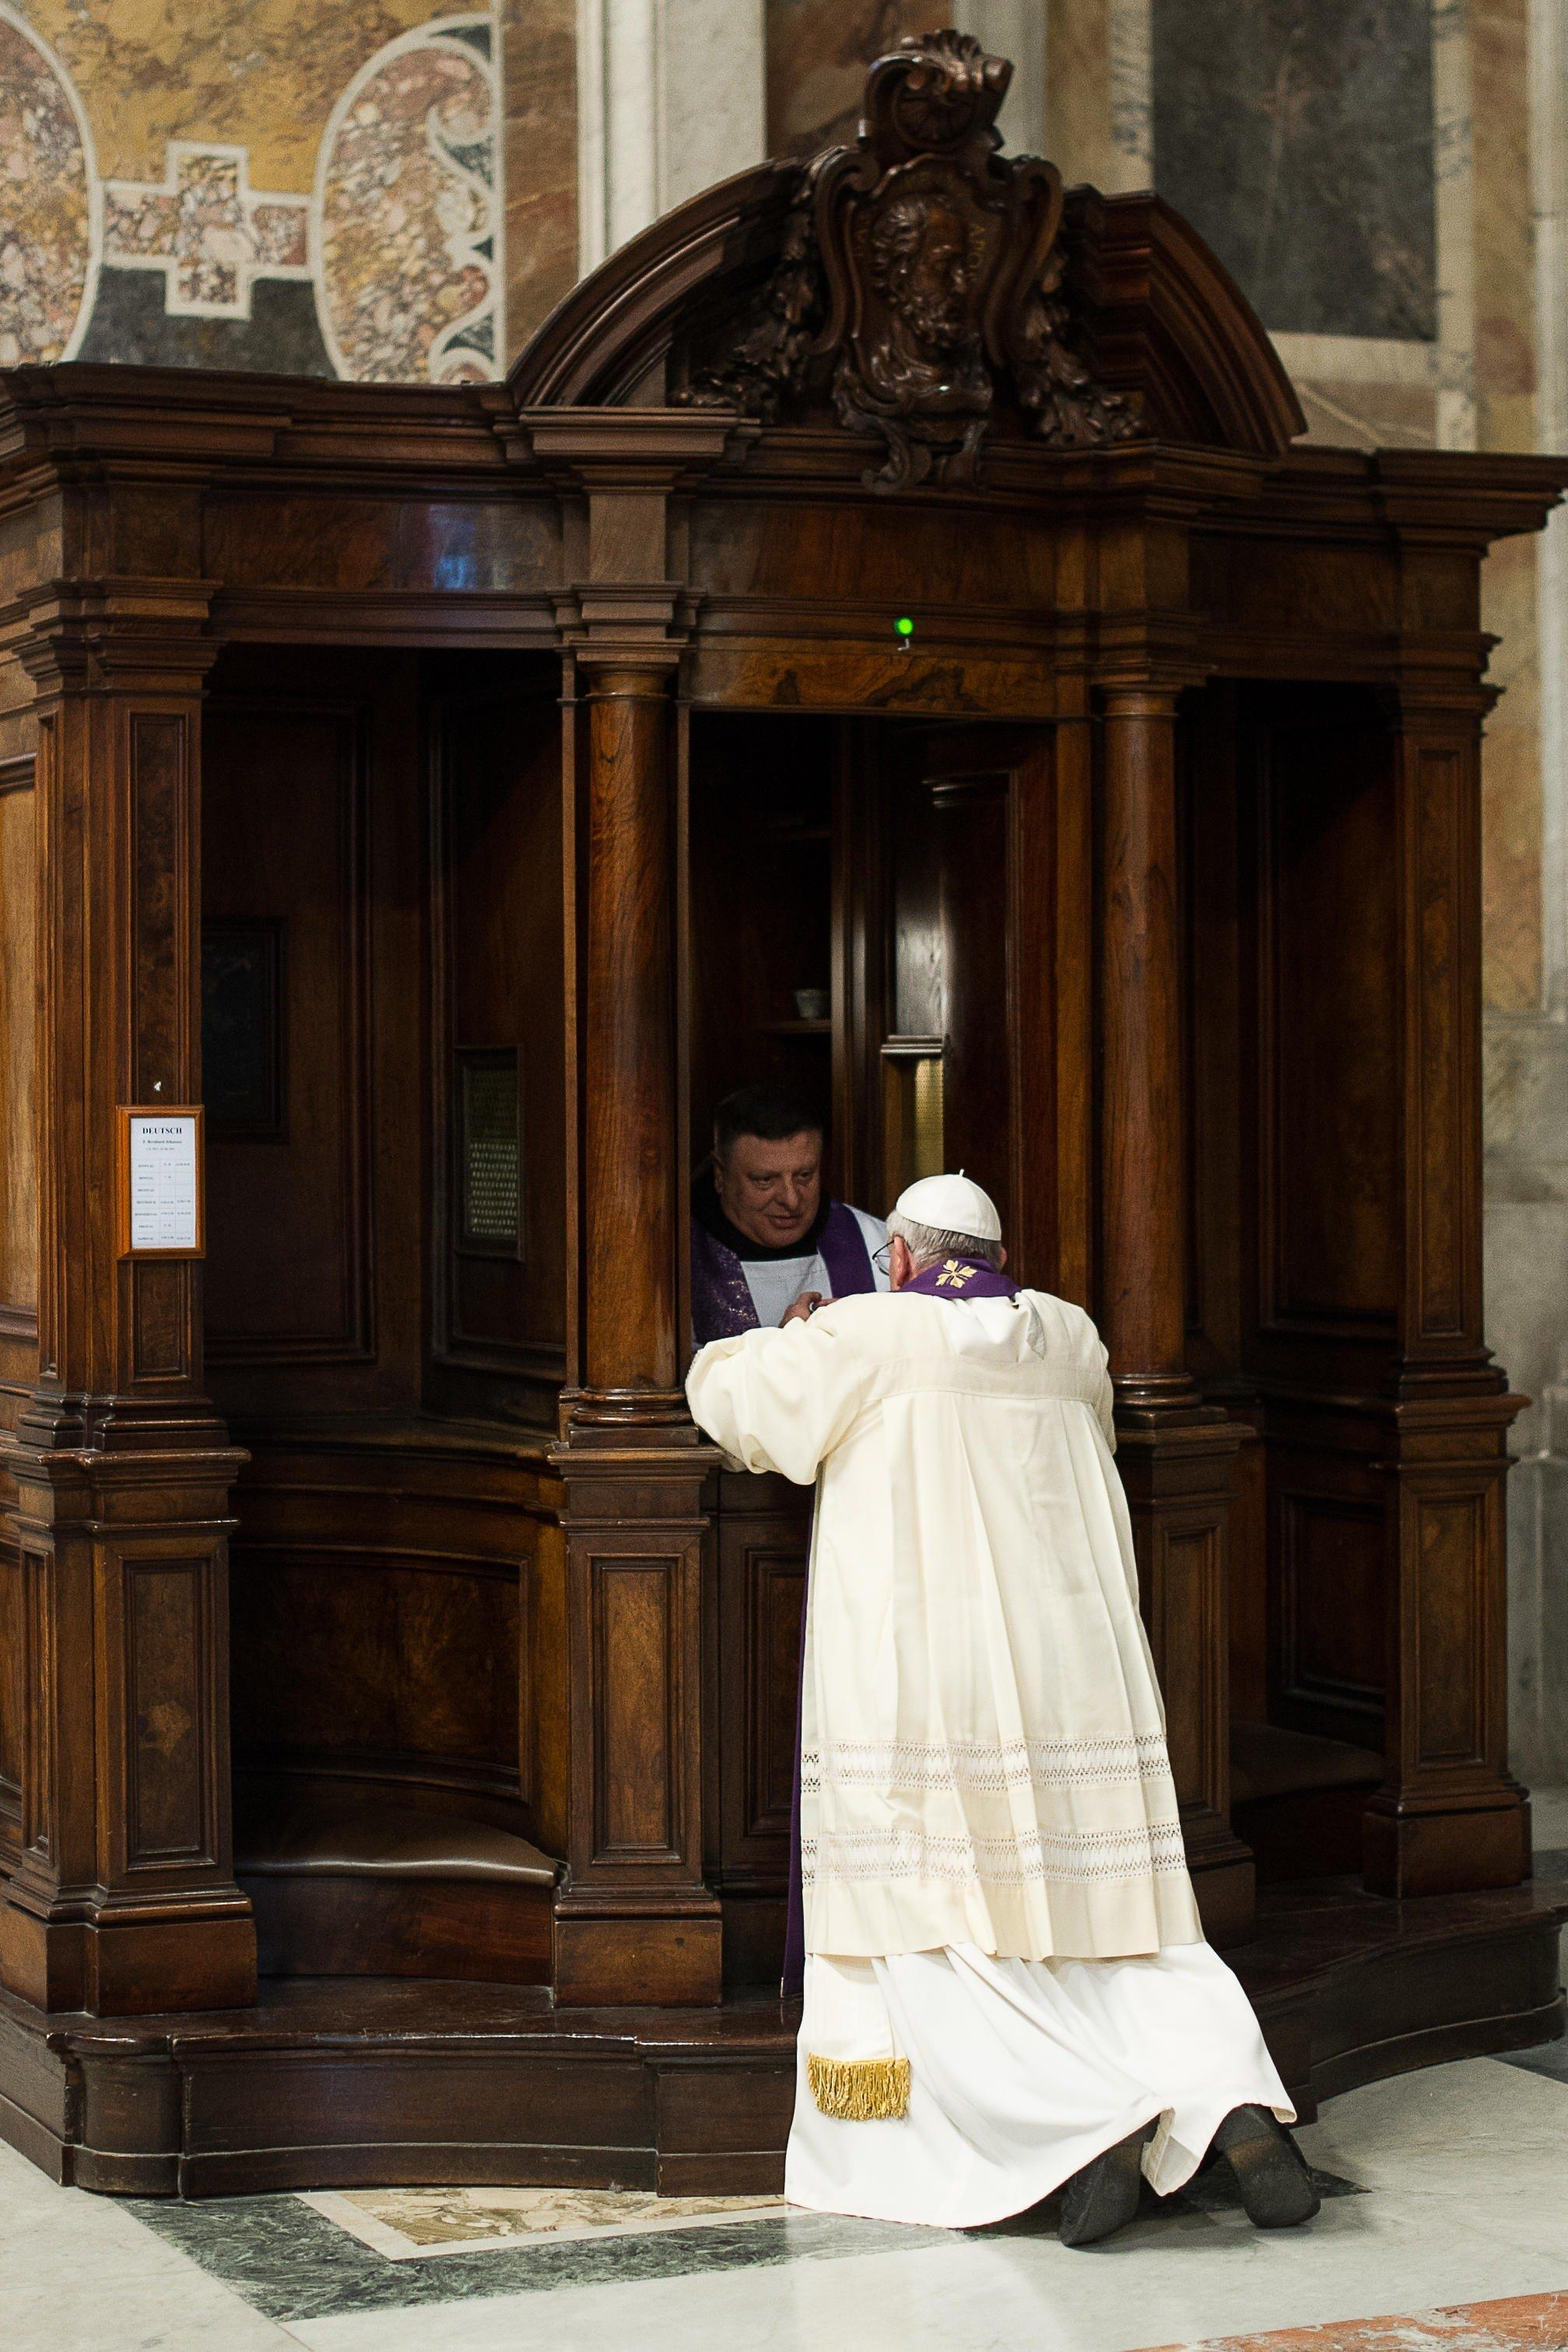 Pope Breaks Protocol, Goes to Confession in Public - NBC News